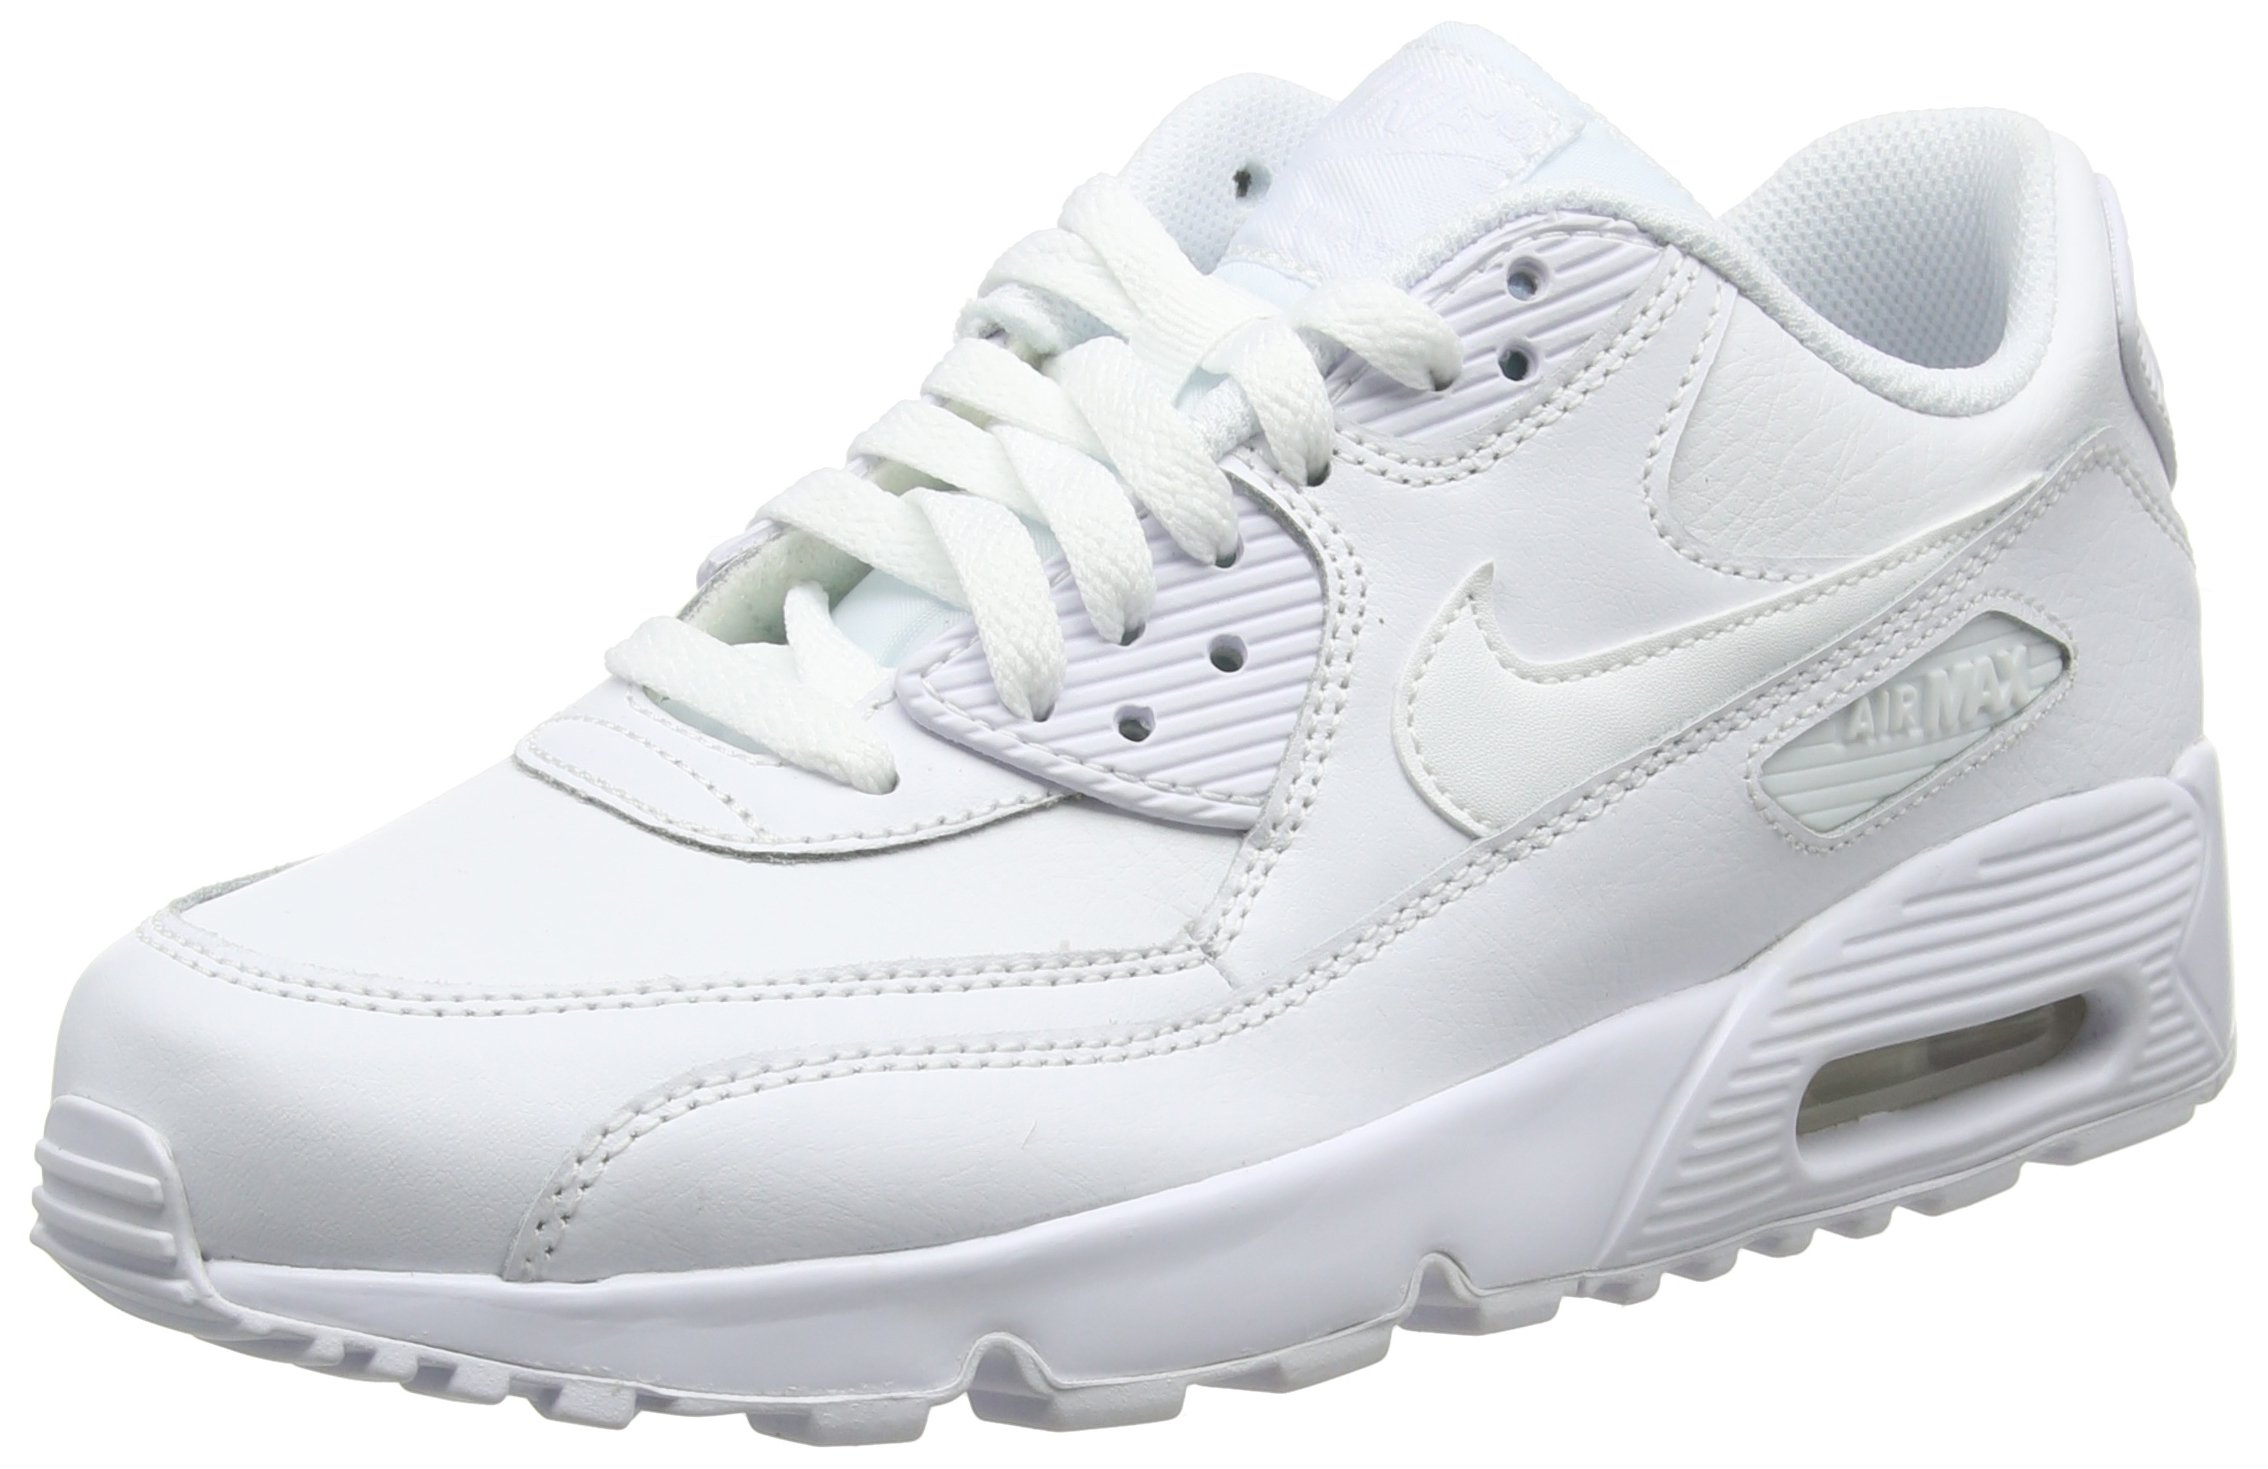 b65324de4b Galleon - NIKE Kids Air Max 90 LTR (GS) Running Shoe (6.5 M US Big Kid,  White/White)